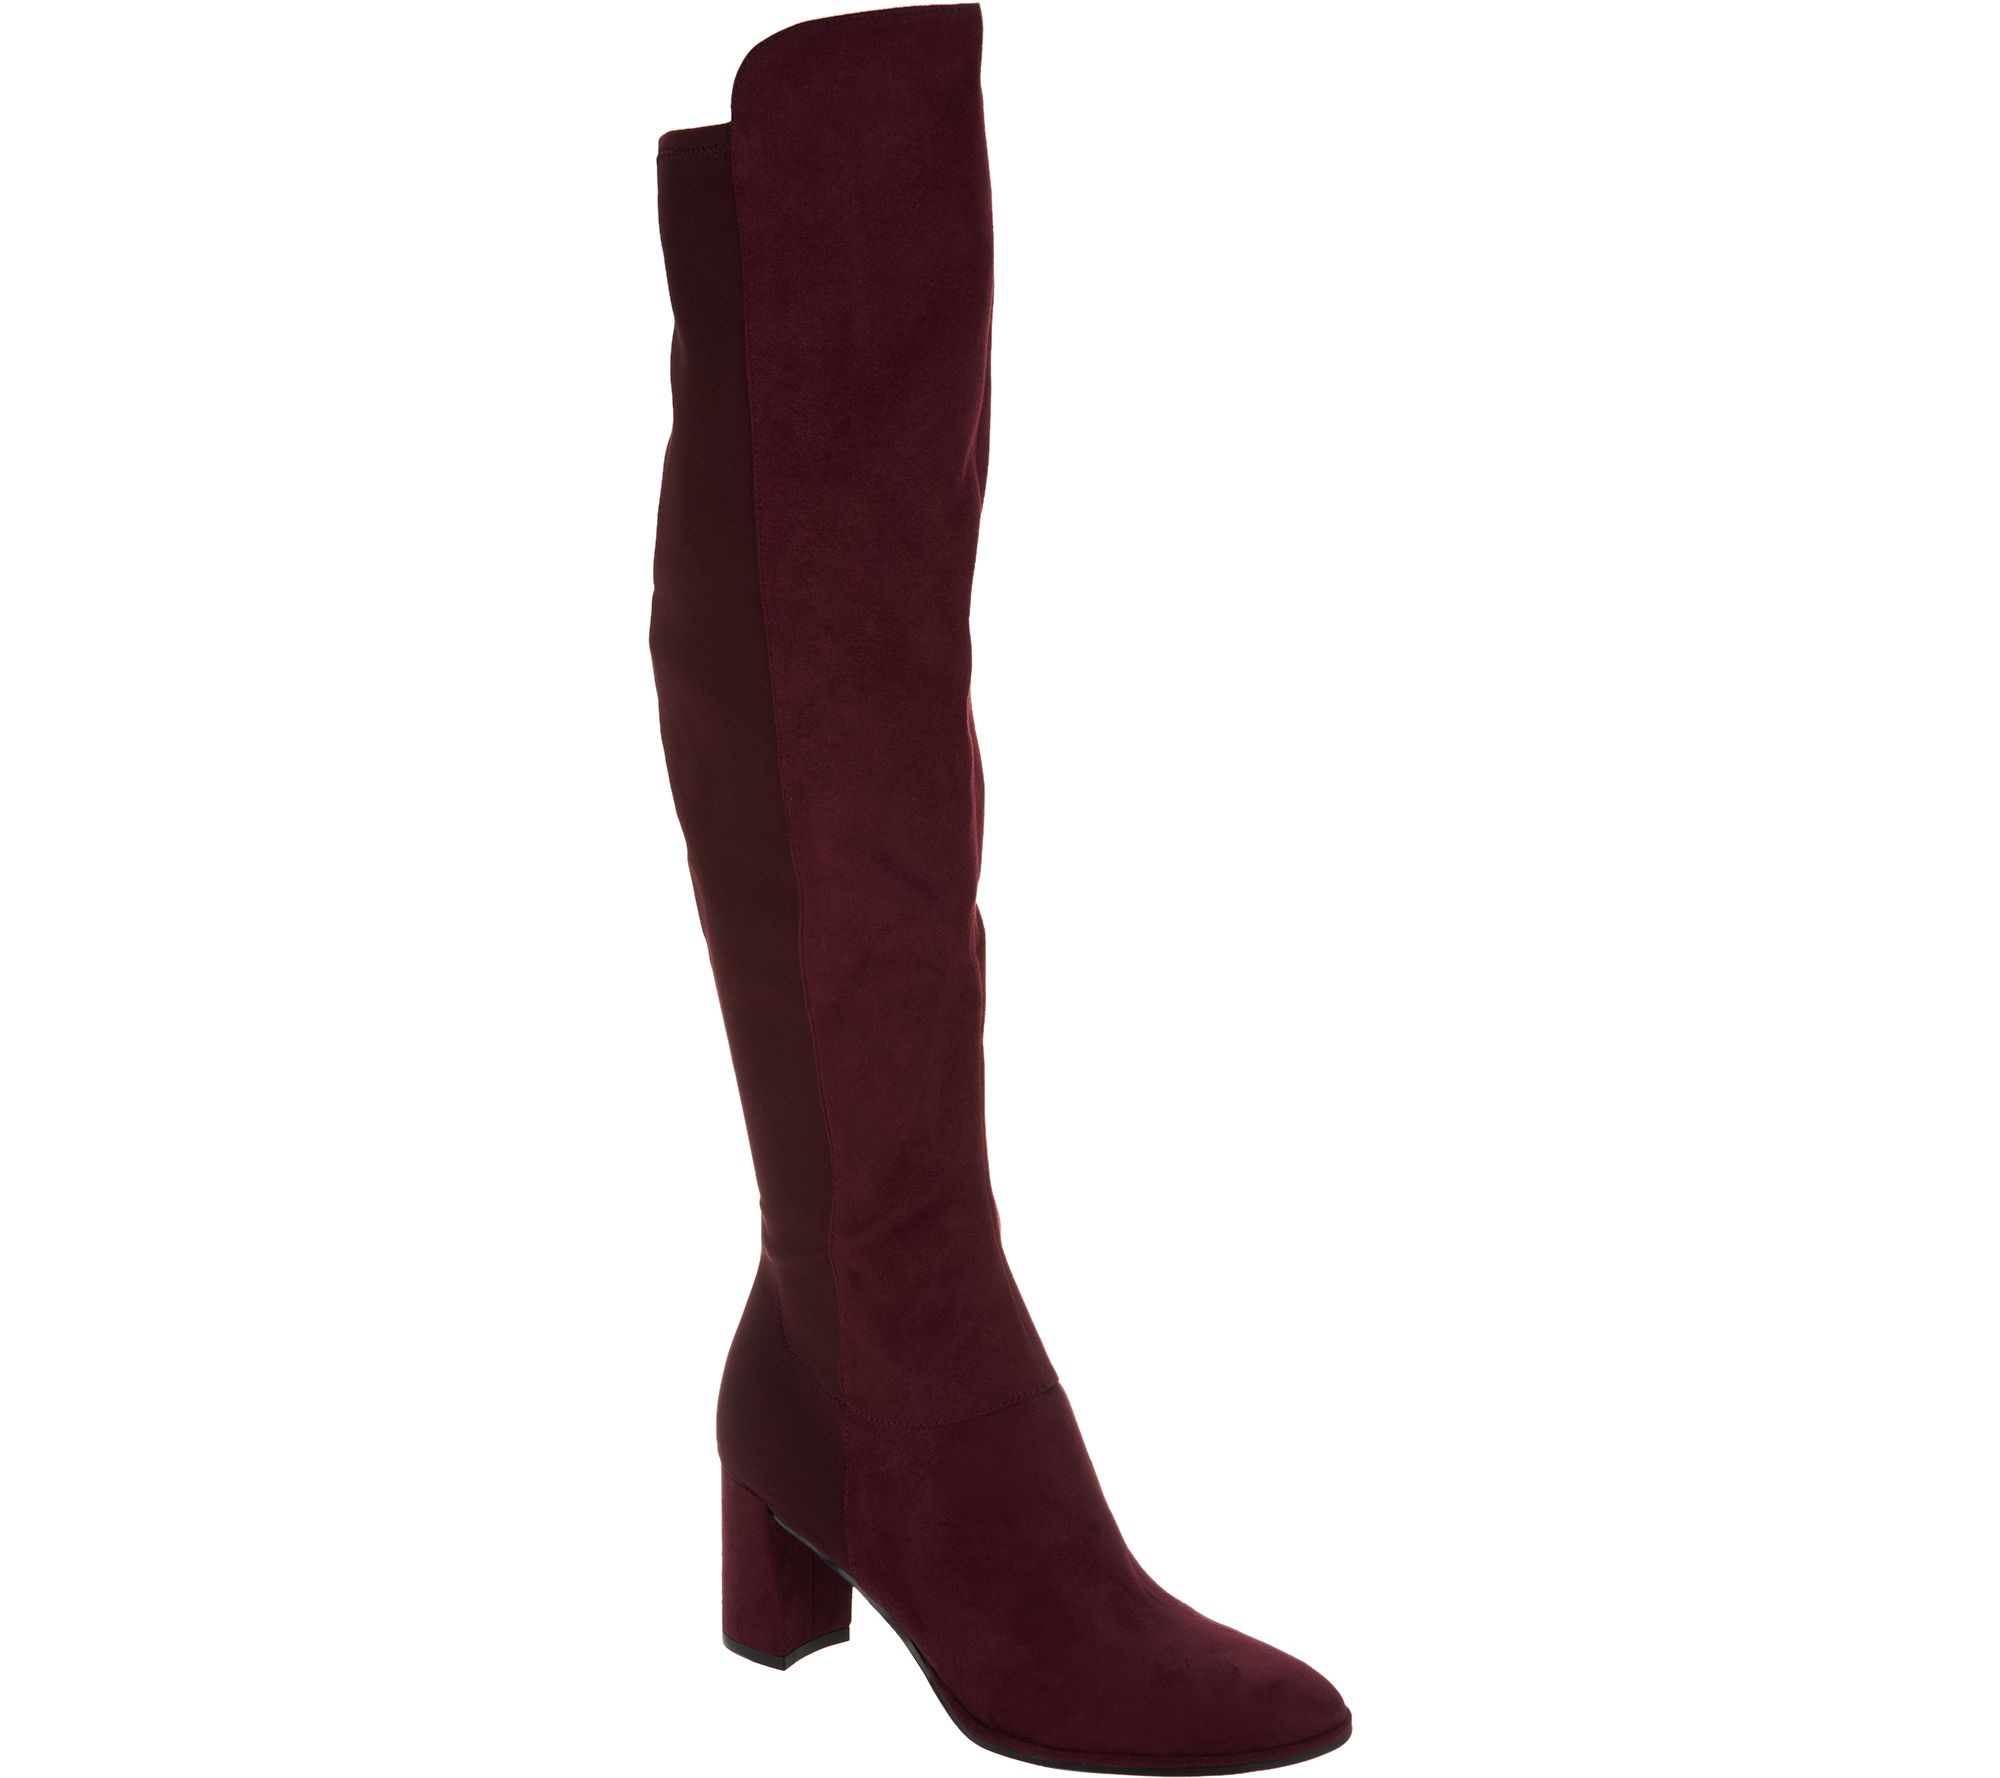 9785f0080c8 Marc Fisher Faux Suede Over-the-Knee Boots - Loran - Page 1 — QVC.com